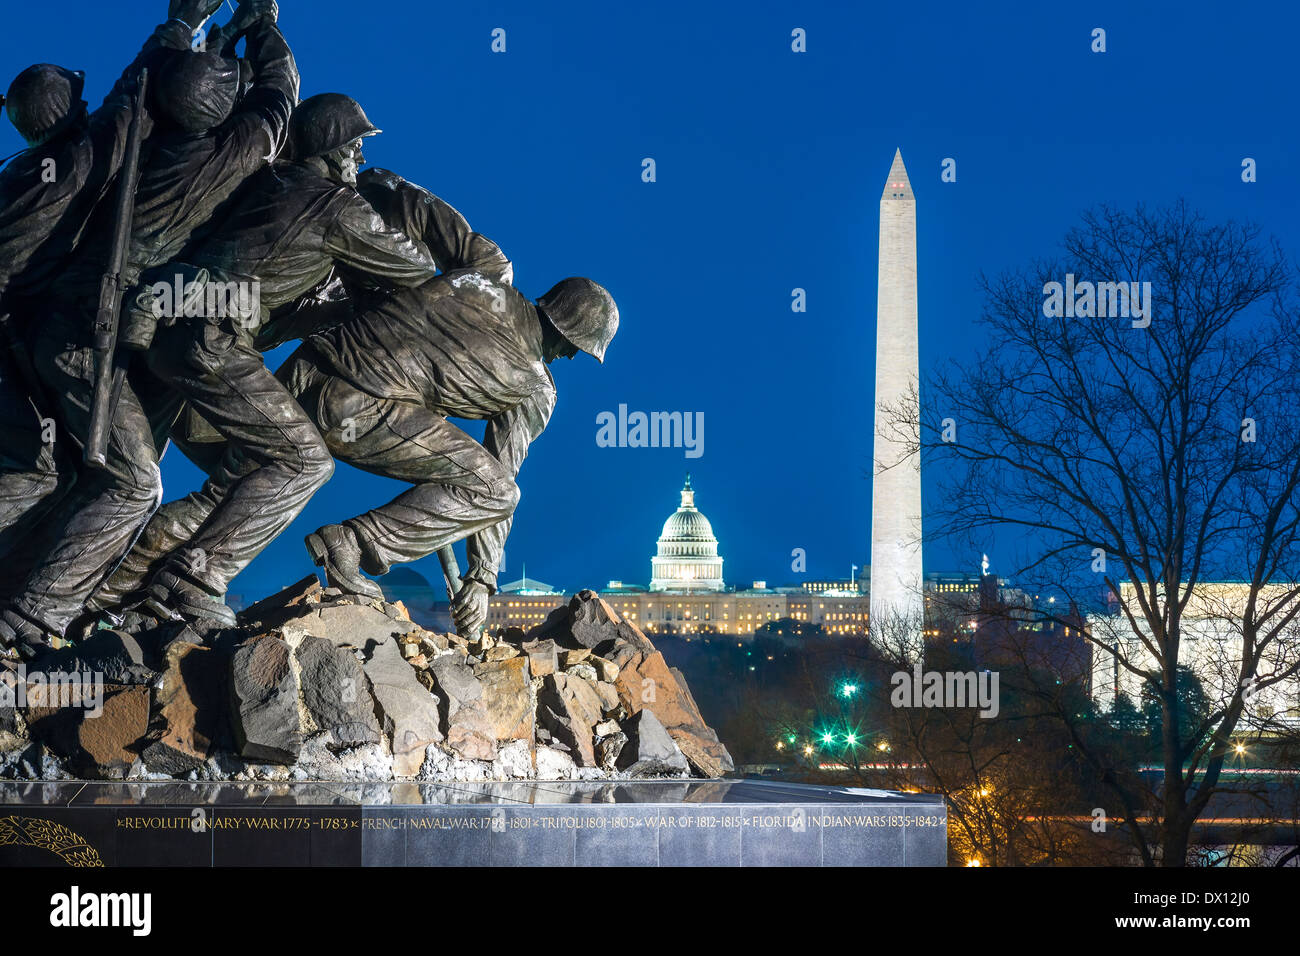 Arlington US Marine Corps War Memorial Washington DC skyline Washington Monument US Capitol Building Lincoln Memorial Stock Photo